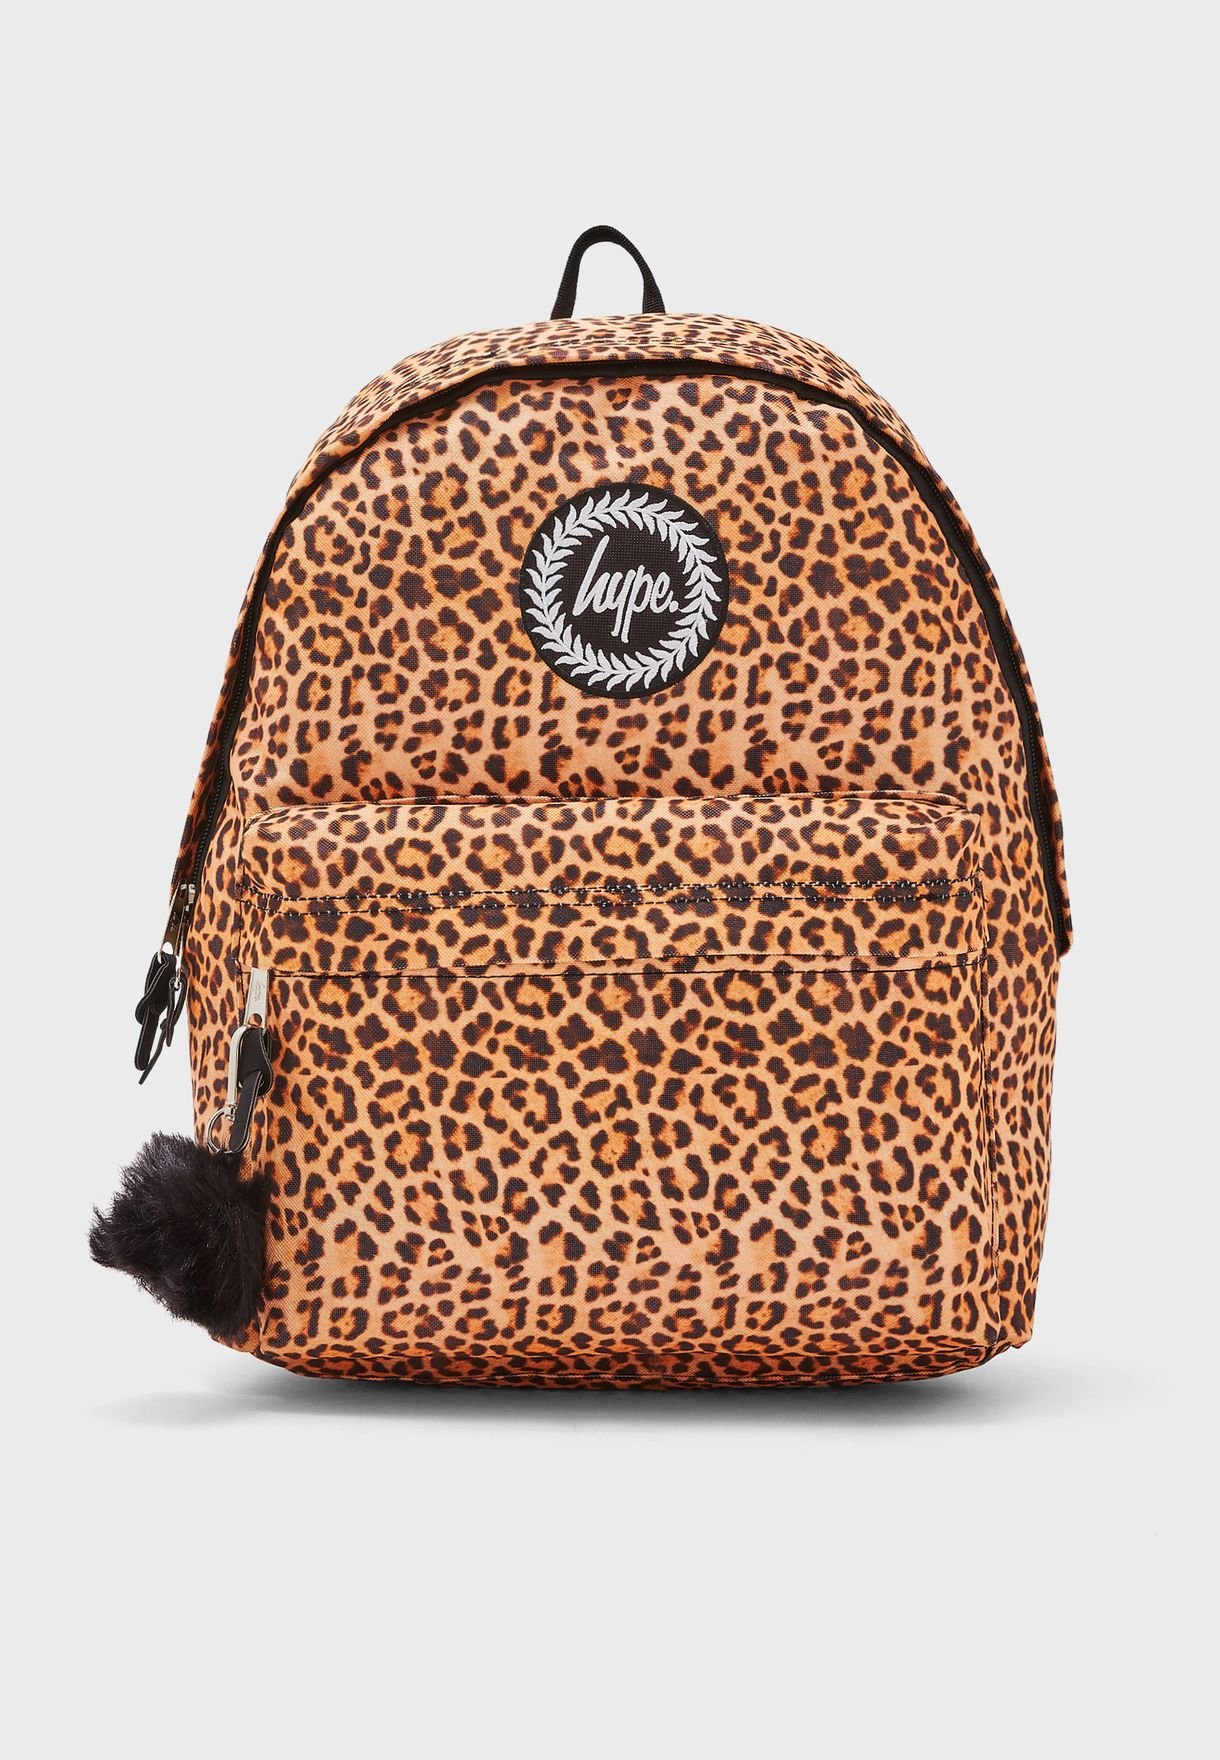 Leopard Pom Pom Backpack